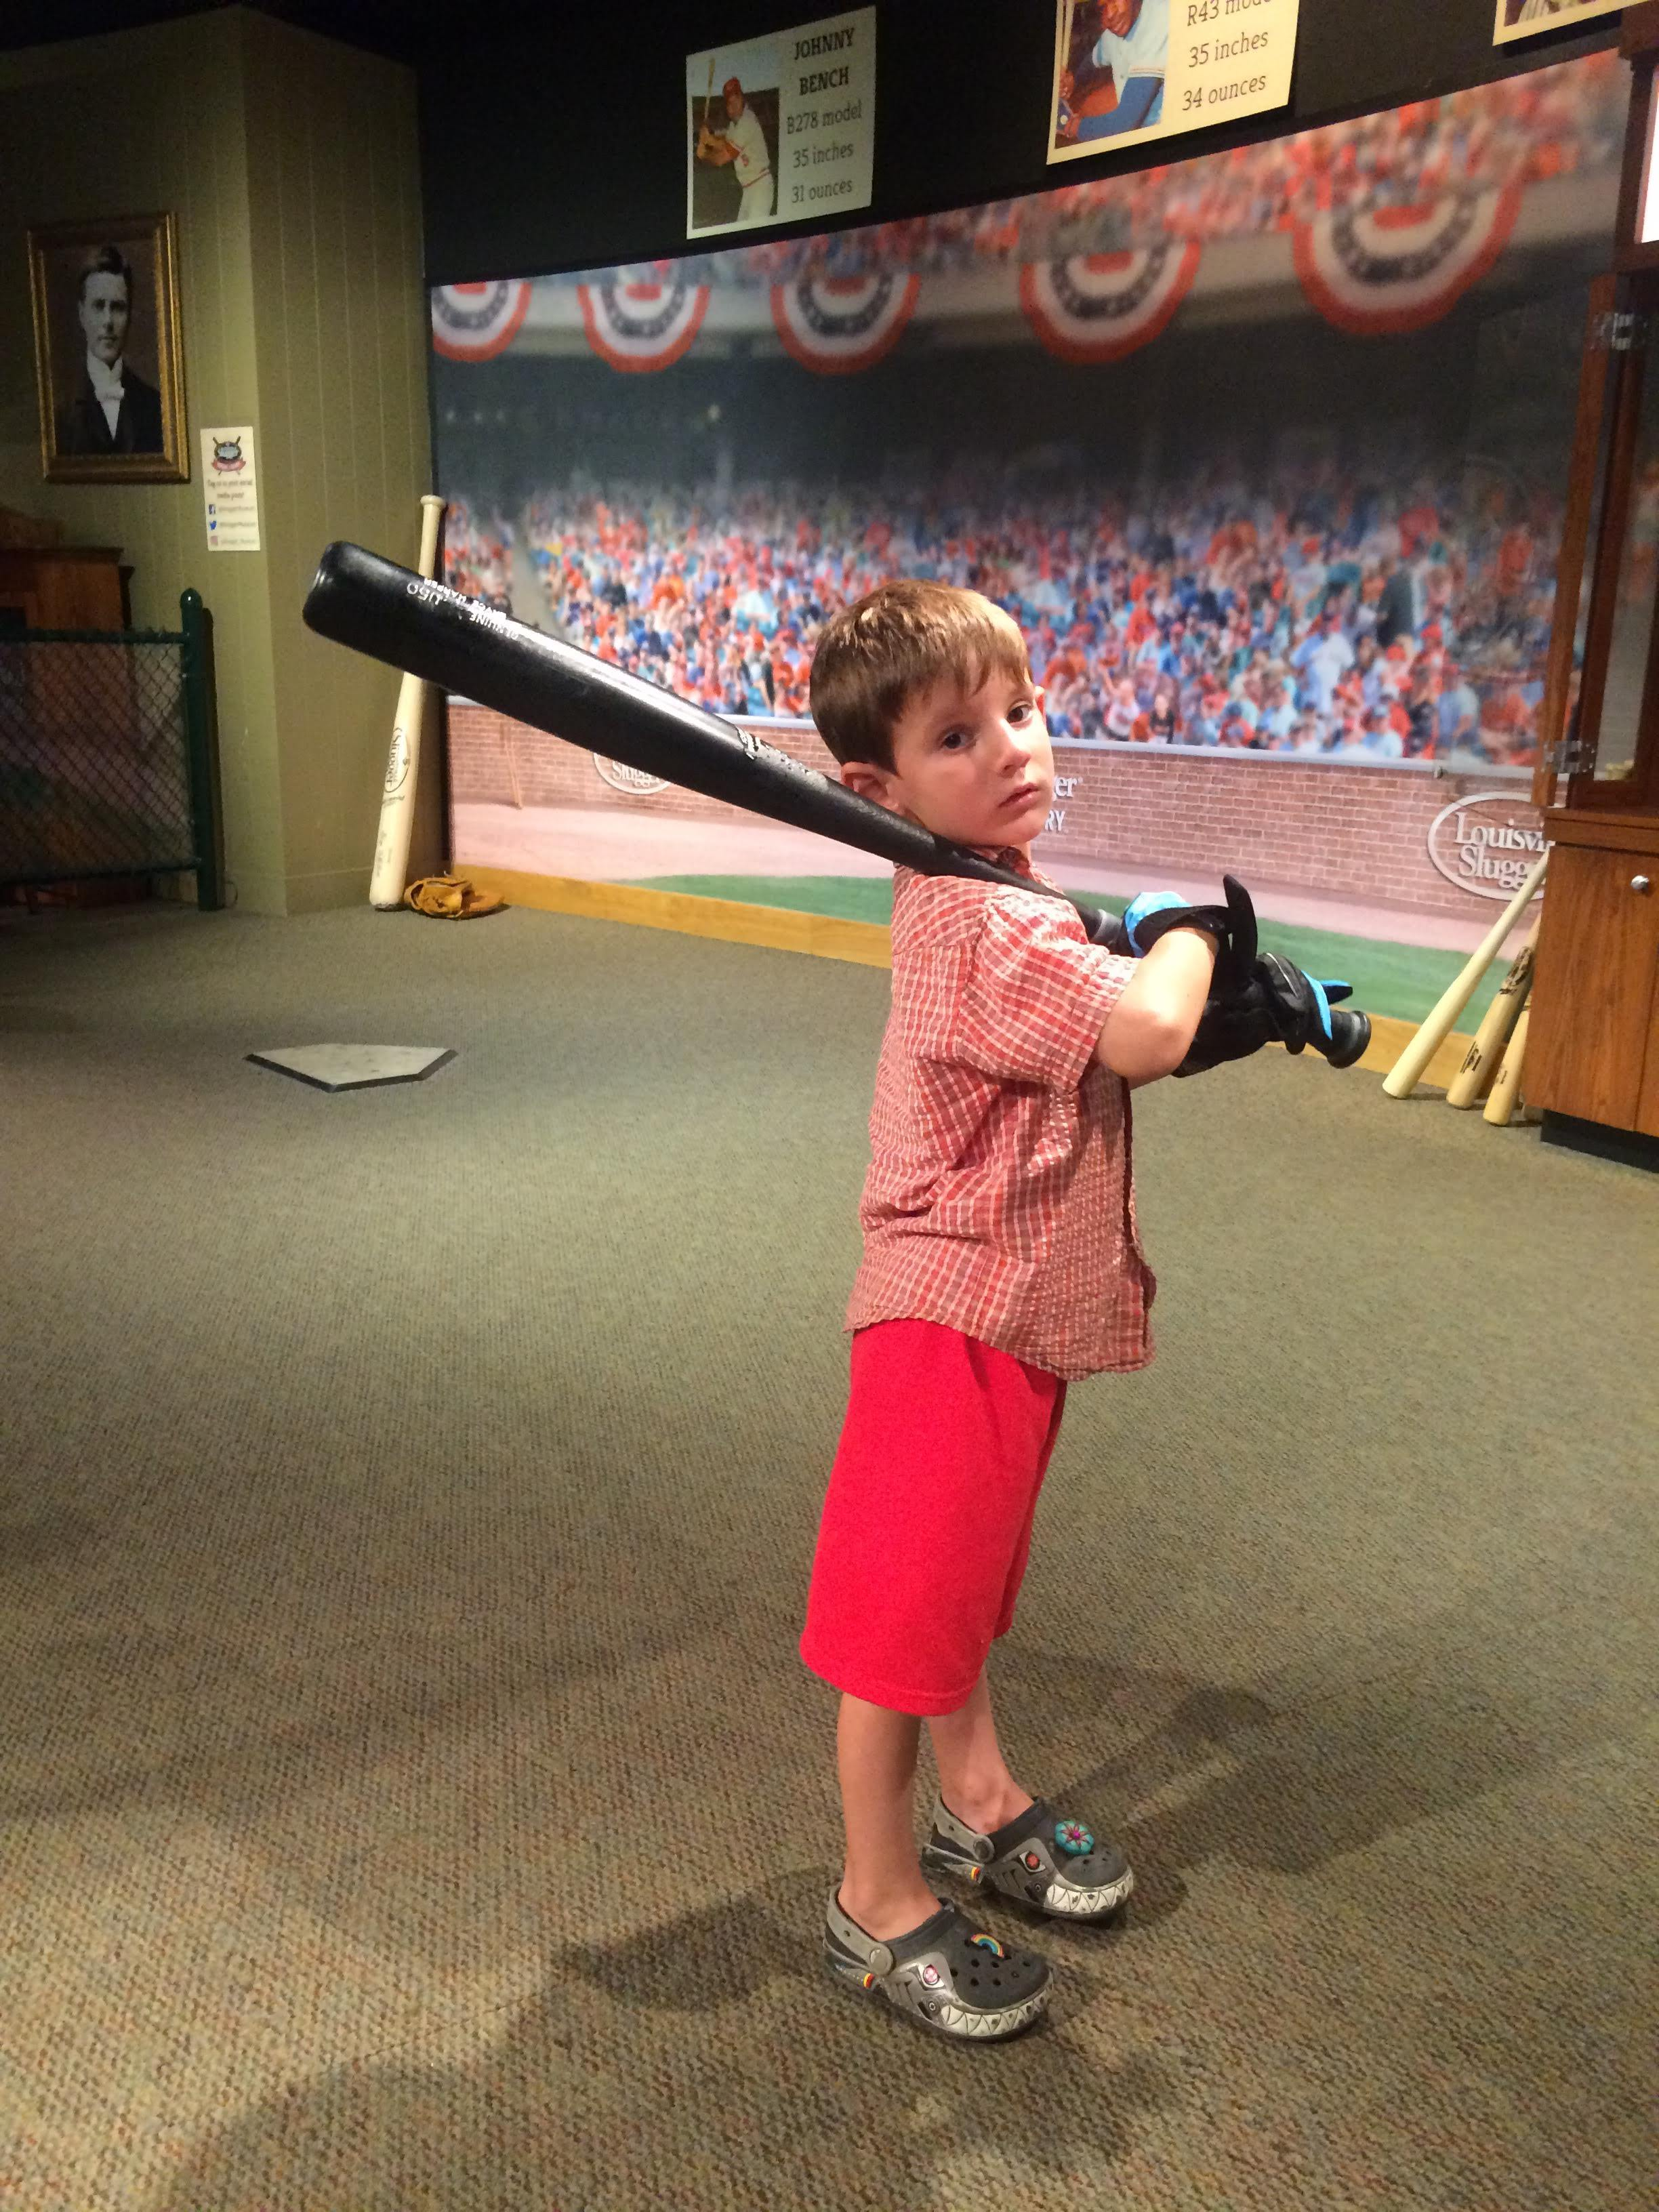 Then off to Louisville, Kentucky to the Slugger factory and tour.